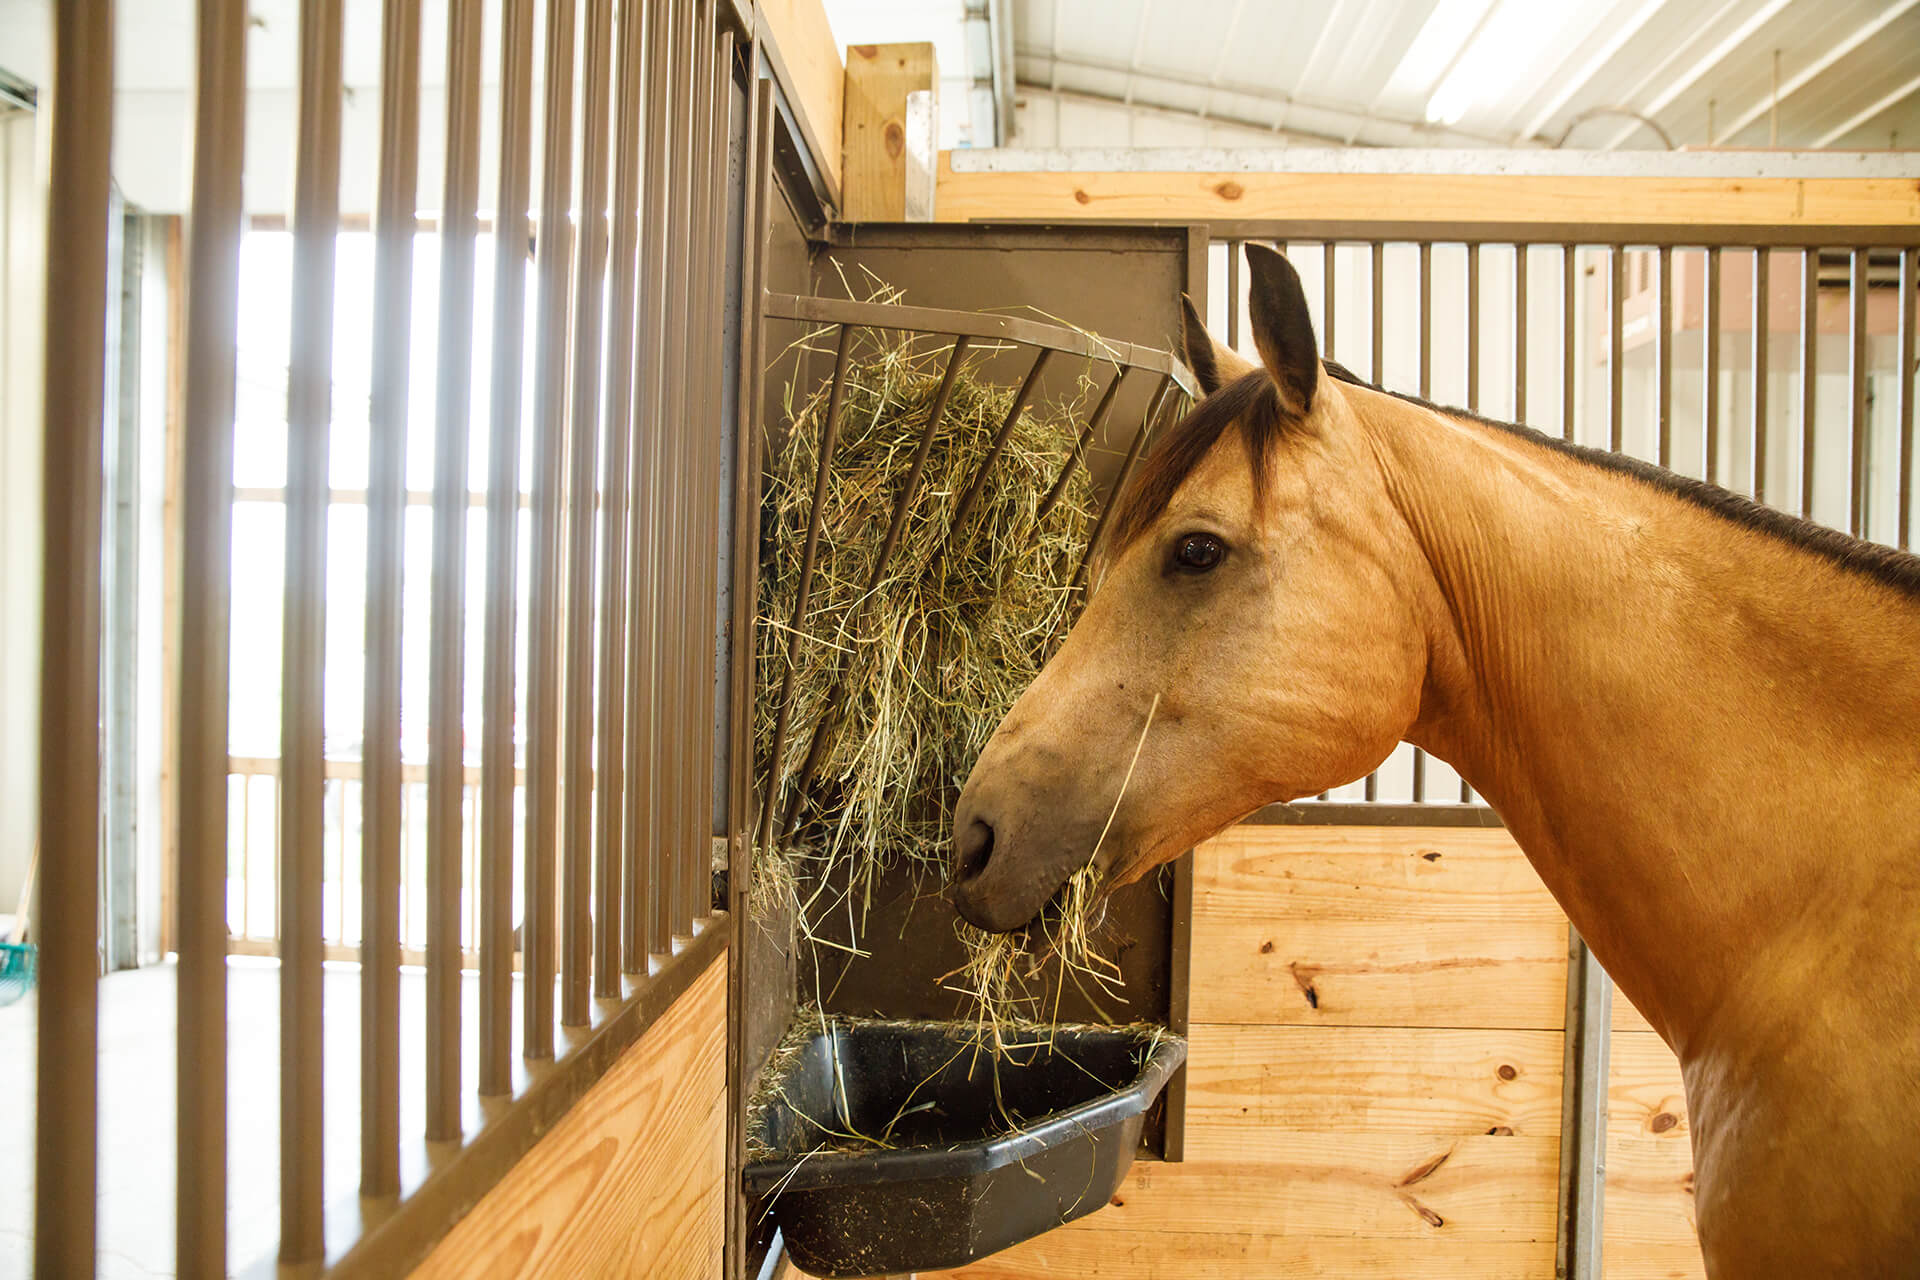 horse eating hay in stall